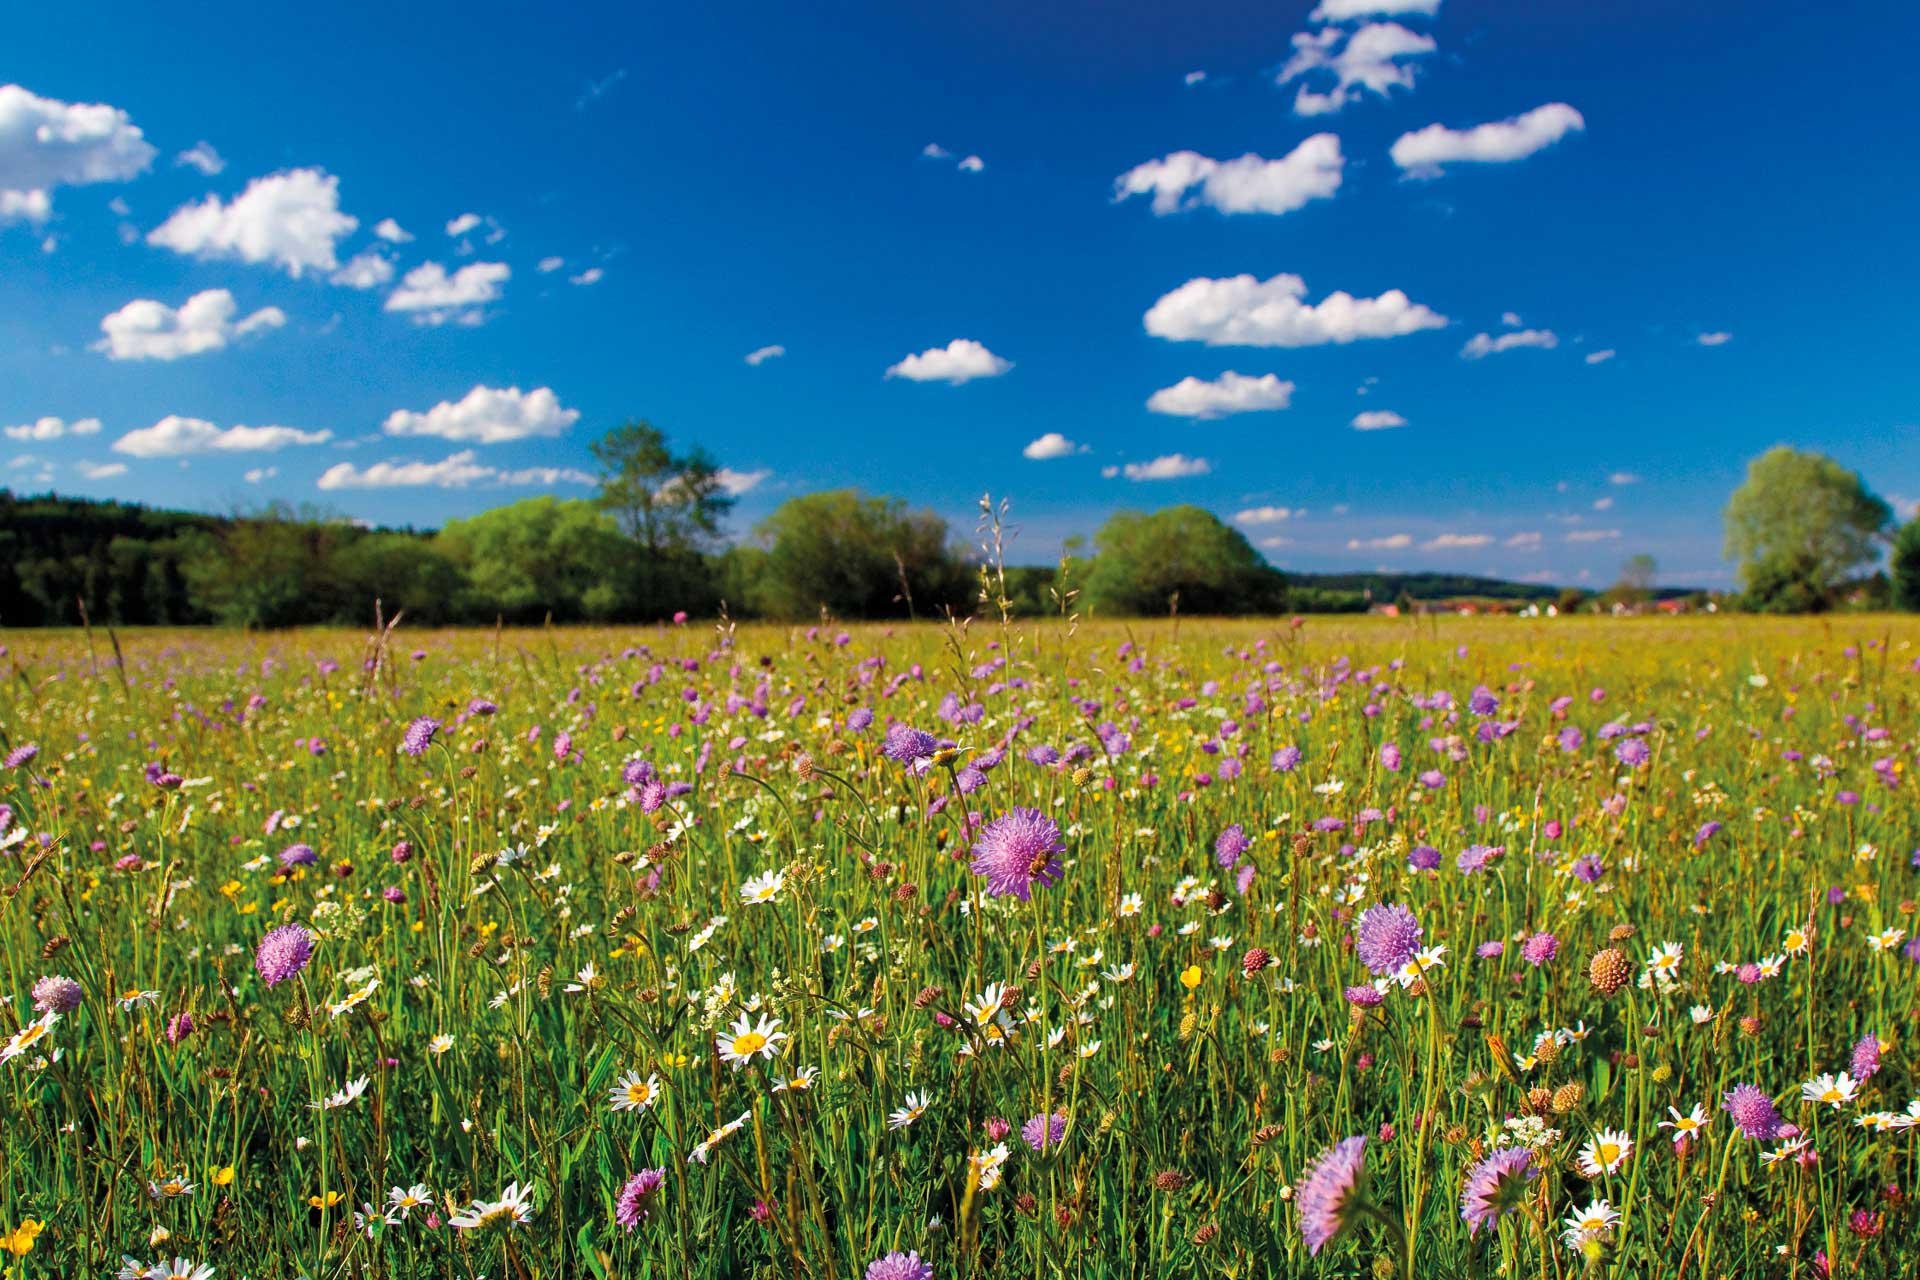 A colourful meadow beneath blue skies.